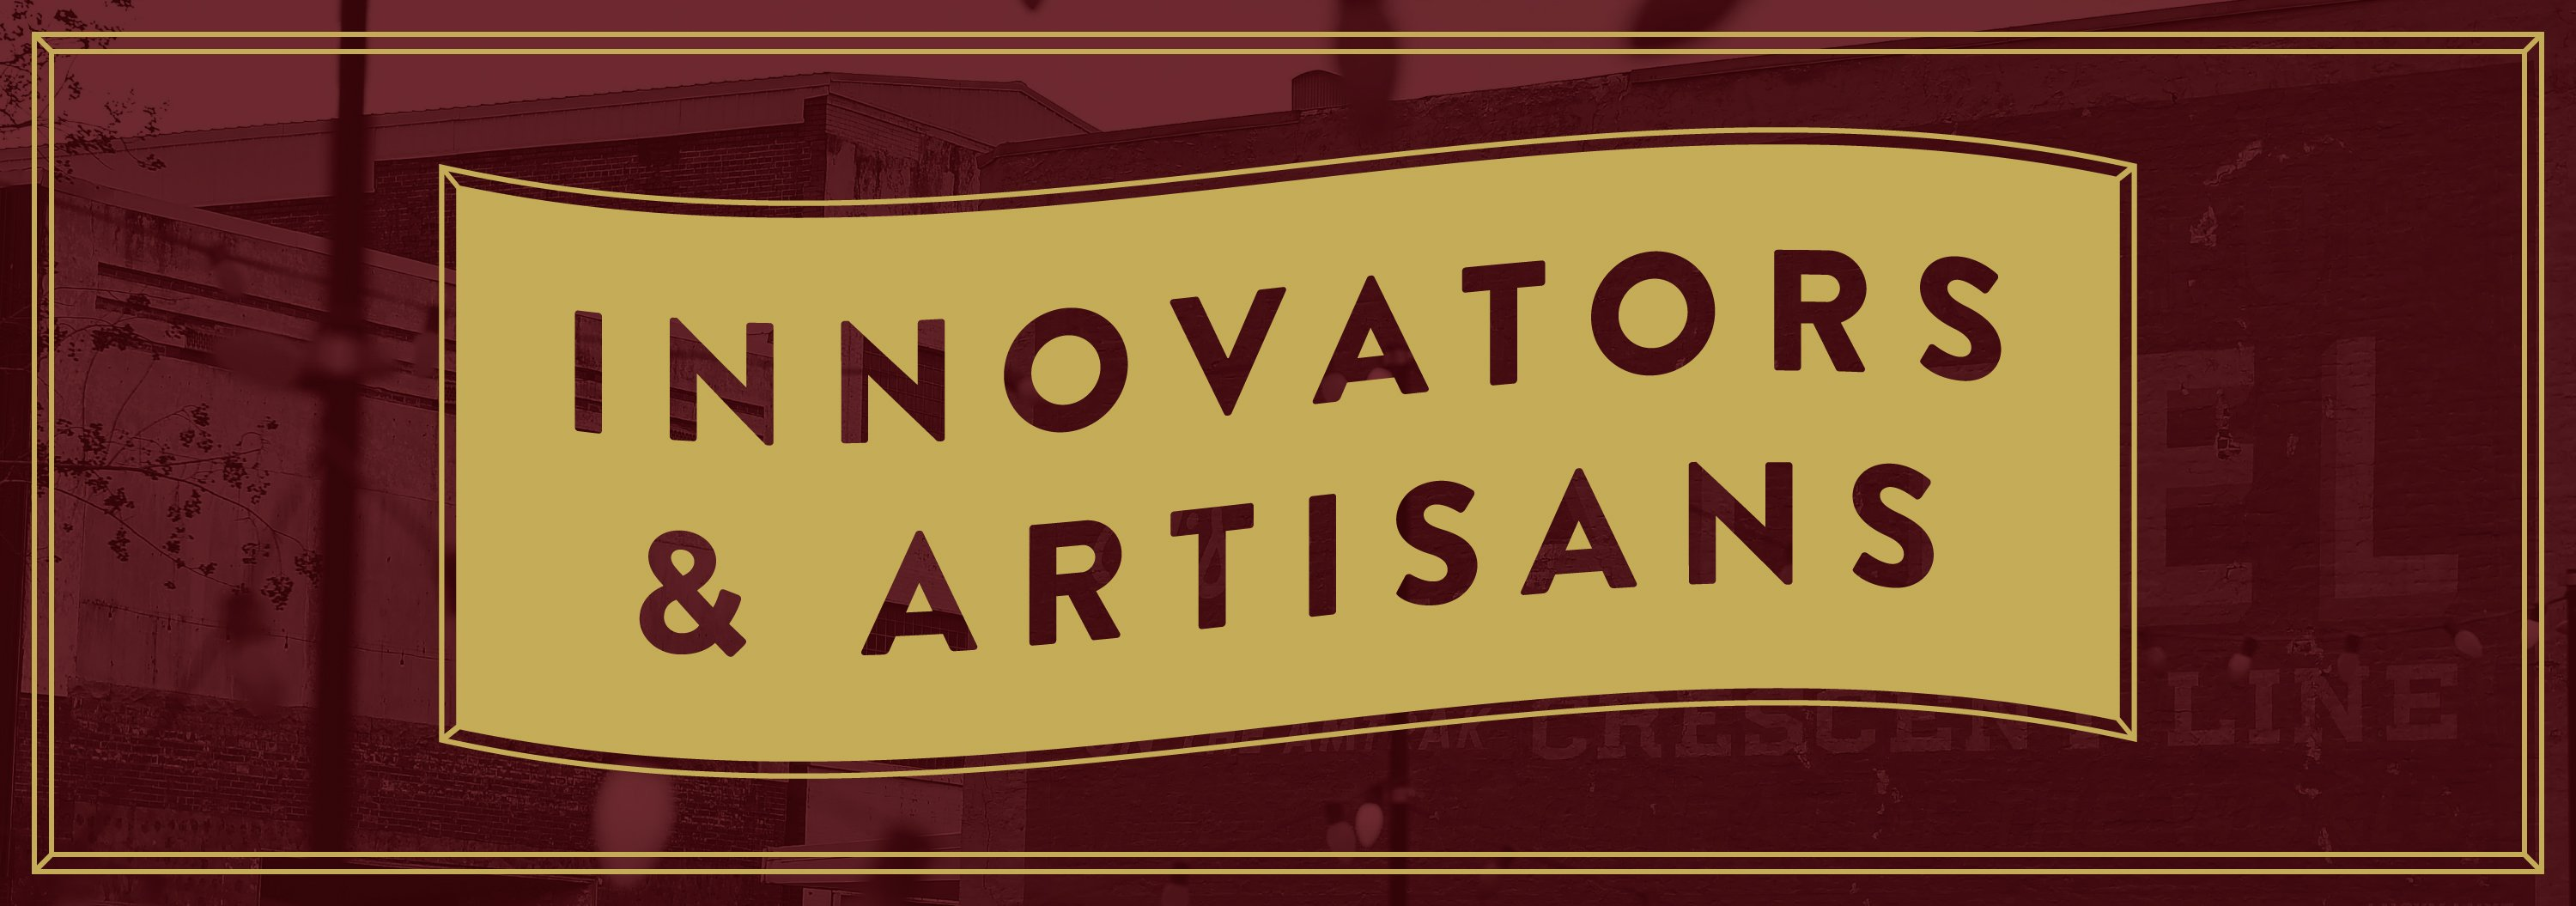 Attractive Innovators U0026 Artisans: Ethan And Leanna Manning   Lott Furniture Co. |  Downtown Laurel, MS